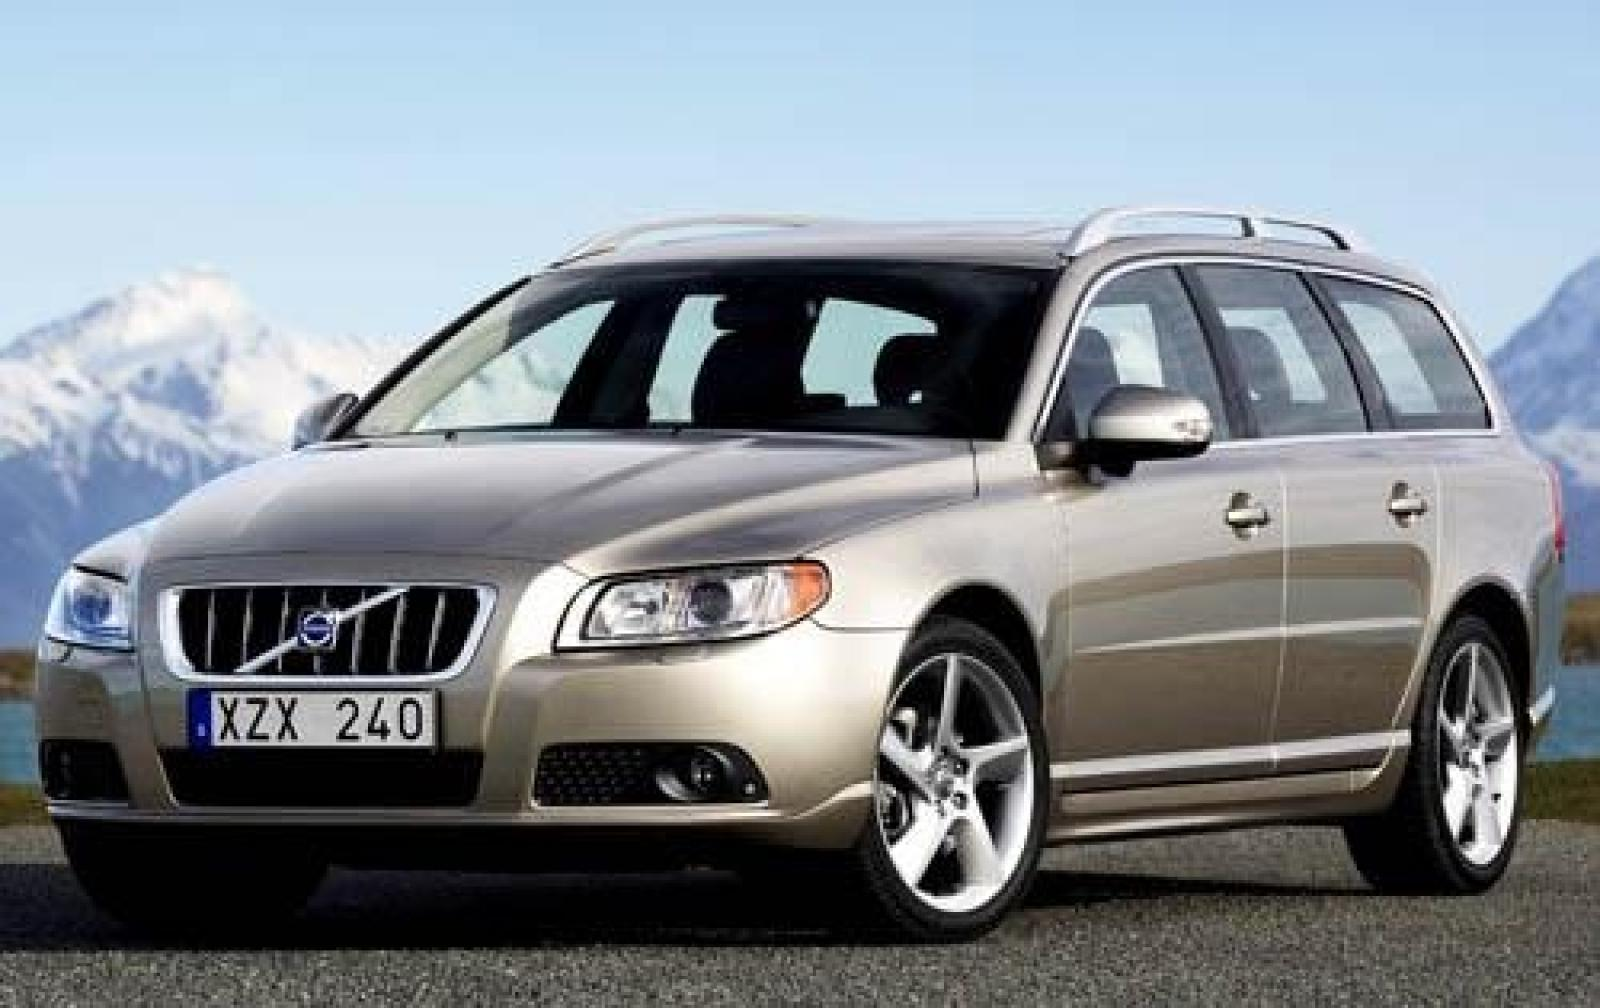 2009 volvo v70 information and photos zombiedrive. Black Bedroom Furniture Sets. Home Design Ideas